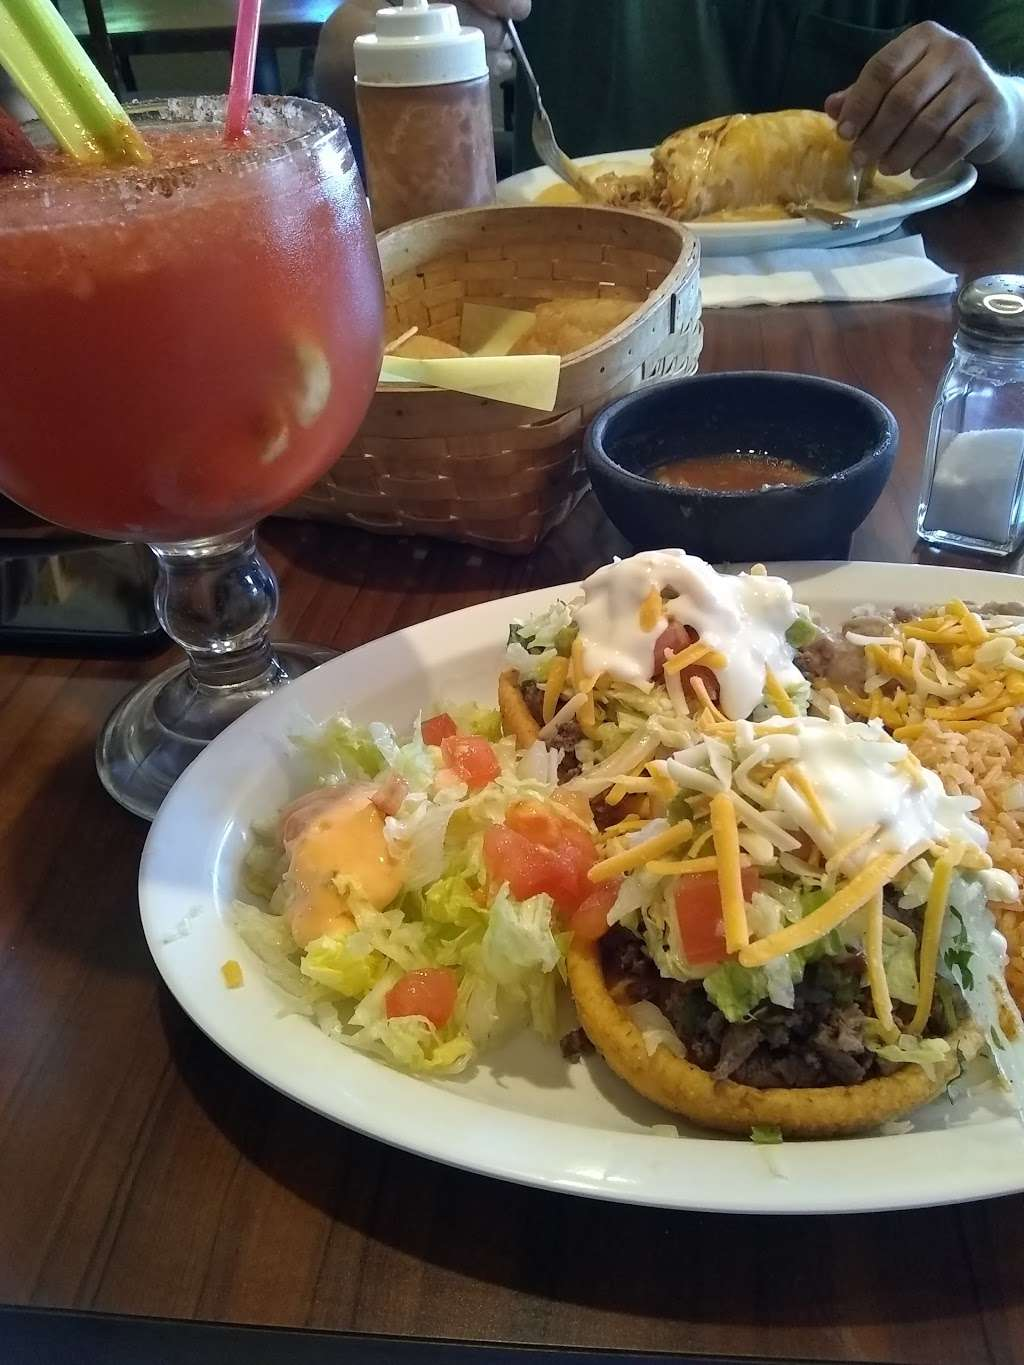 Gardunos Sports Bar and Grill - meal delivery  | Photo 1 of 10 | Address: 9823 Valley Blvd, El Monte, CA 91731, USA | Phone: (626) 448-4746